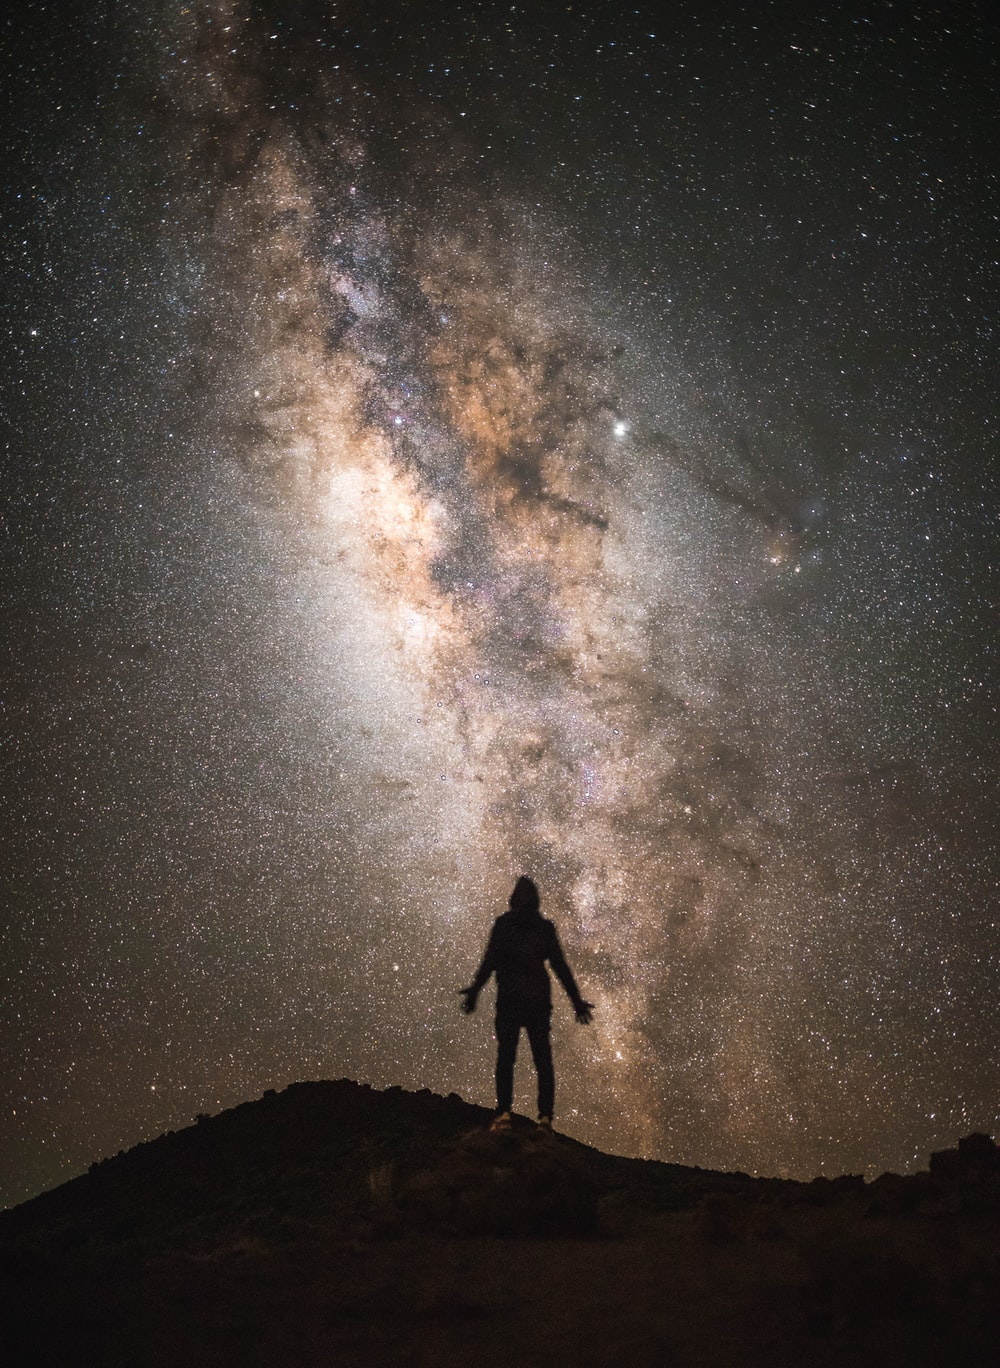 silhouette of a man with the Milky Way background